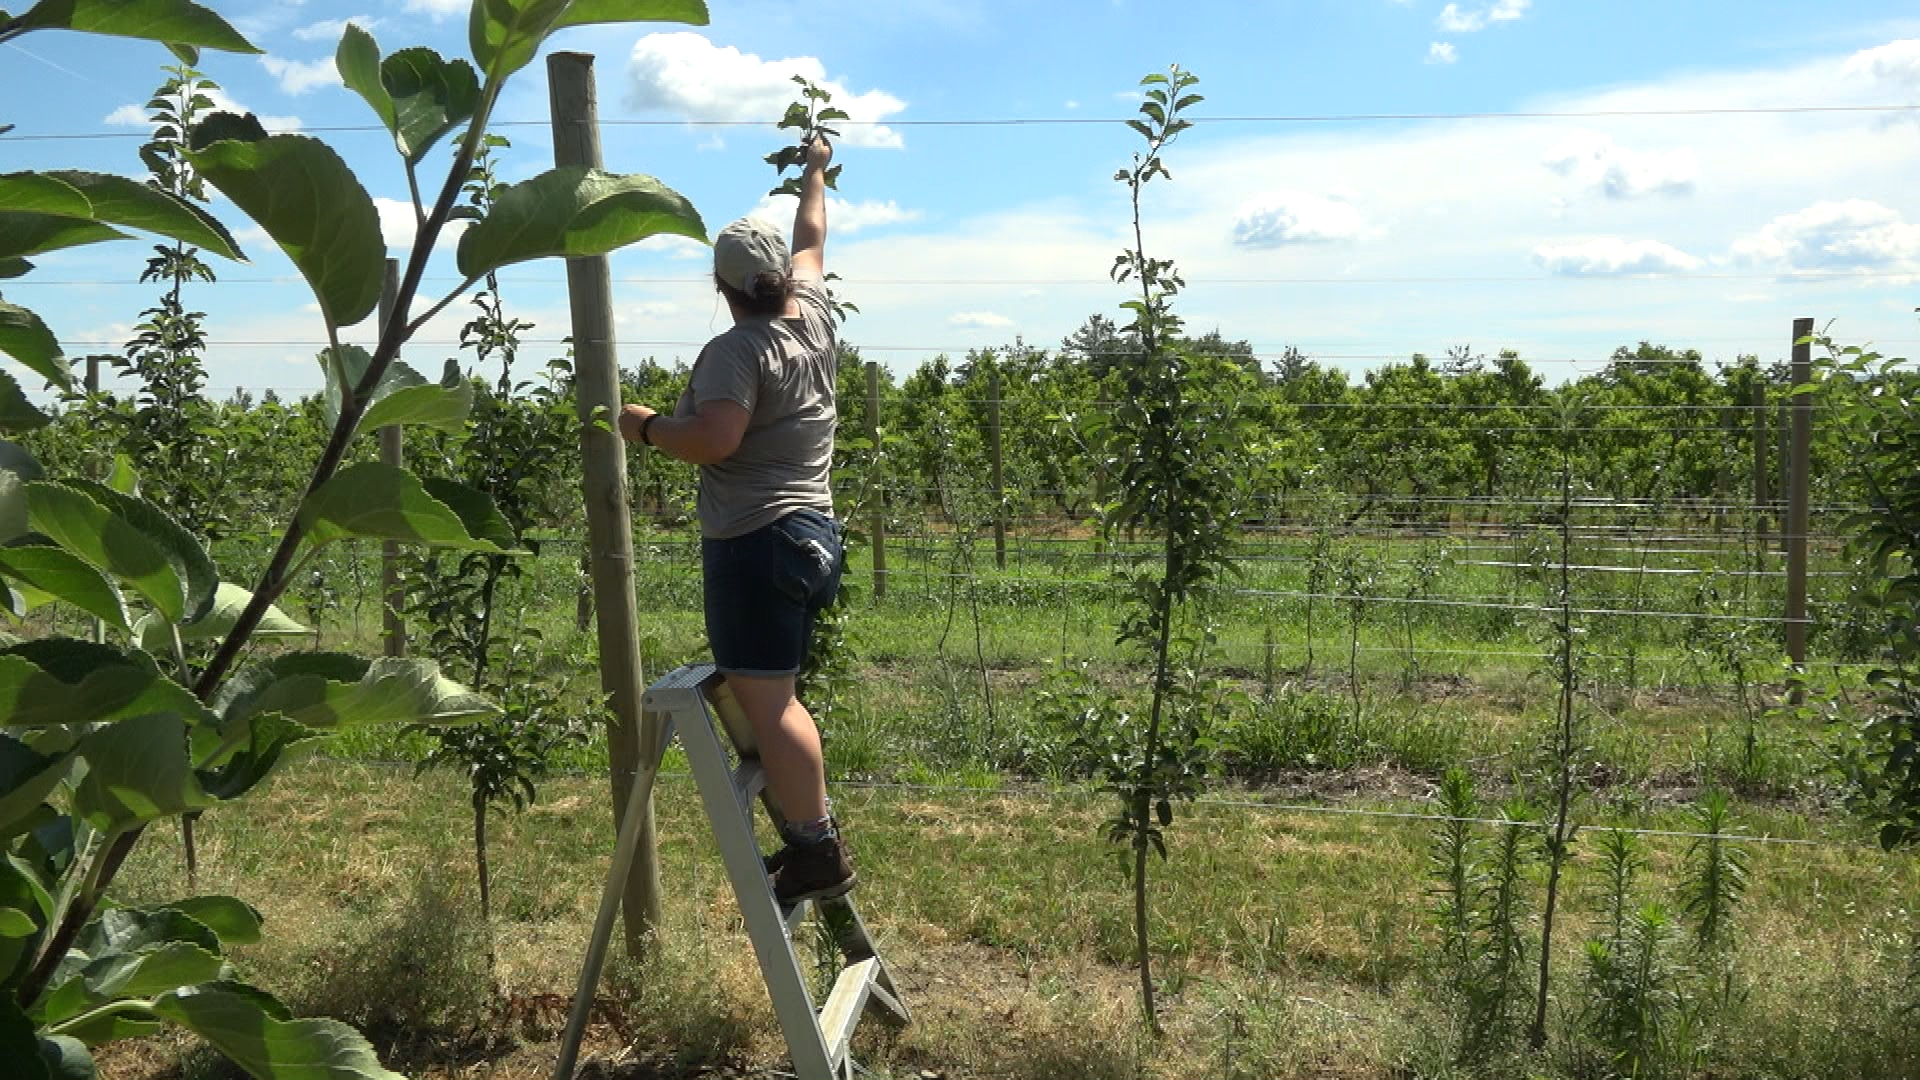 Visit Apex Orchards in Shelburne, MA and learn how the farm is surviving and planning for pick-your-own fruit season during the pandemic.